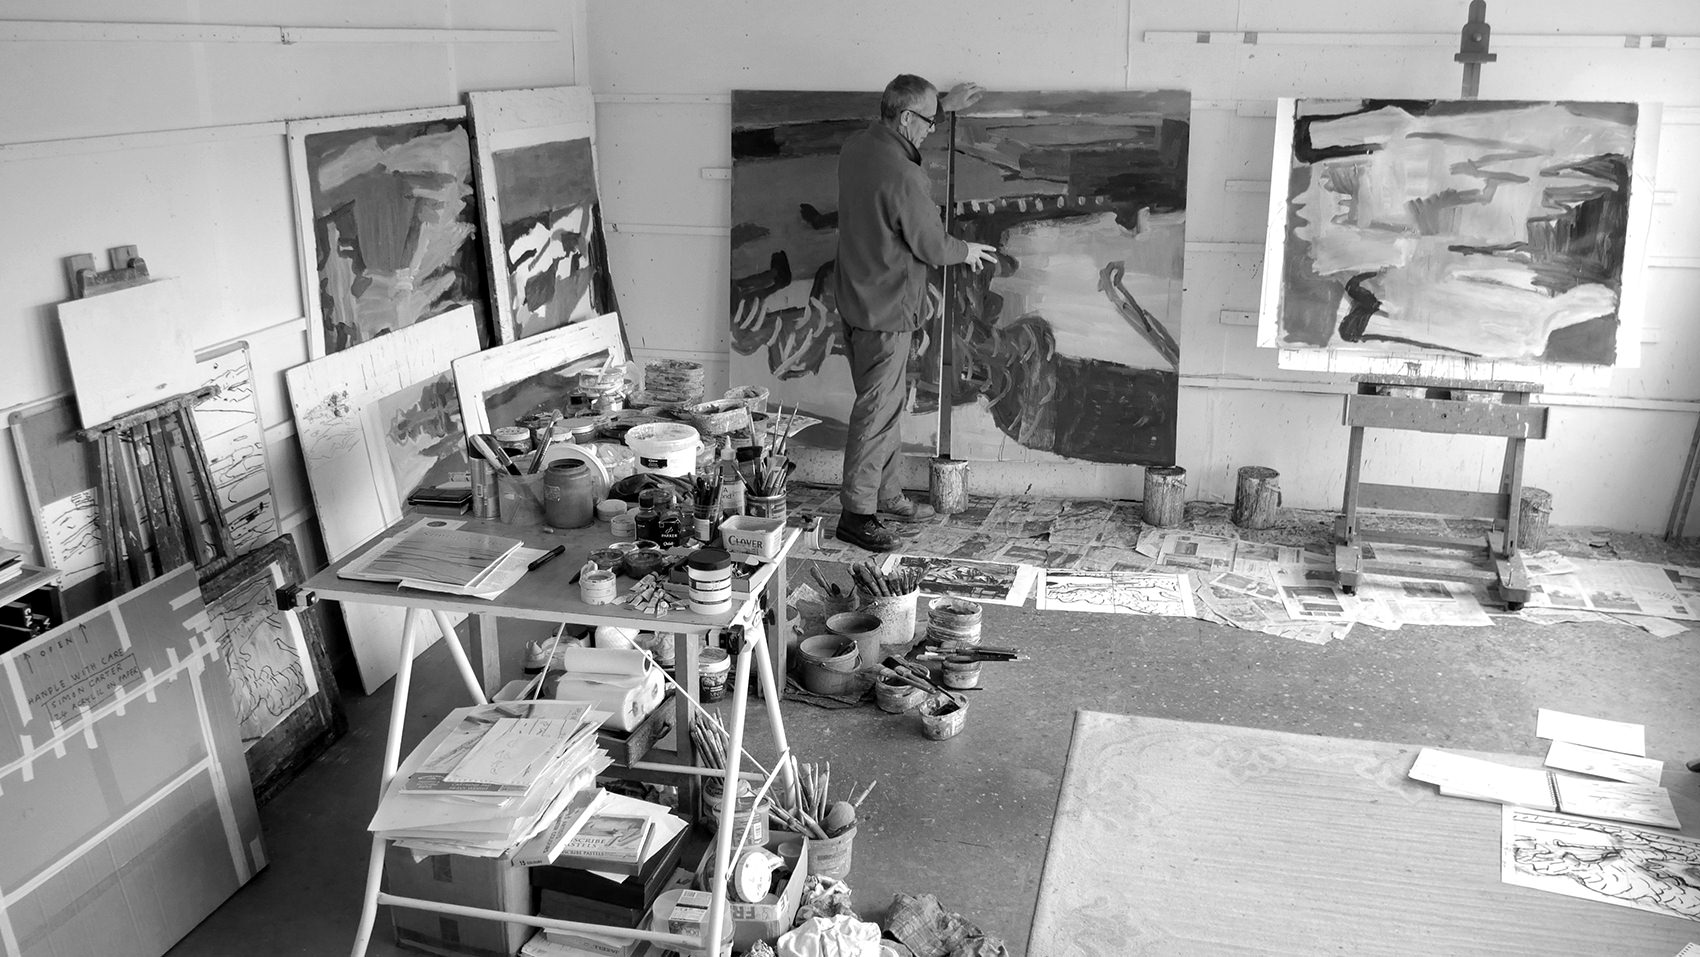 Simon Carter in his studio. Photo by Noah Carter.